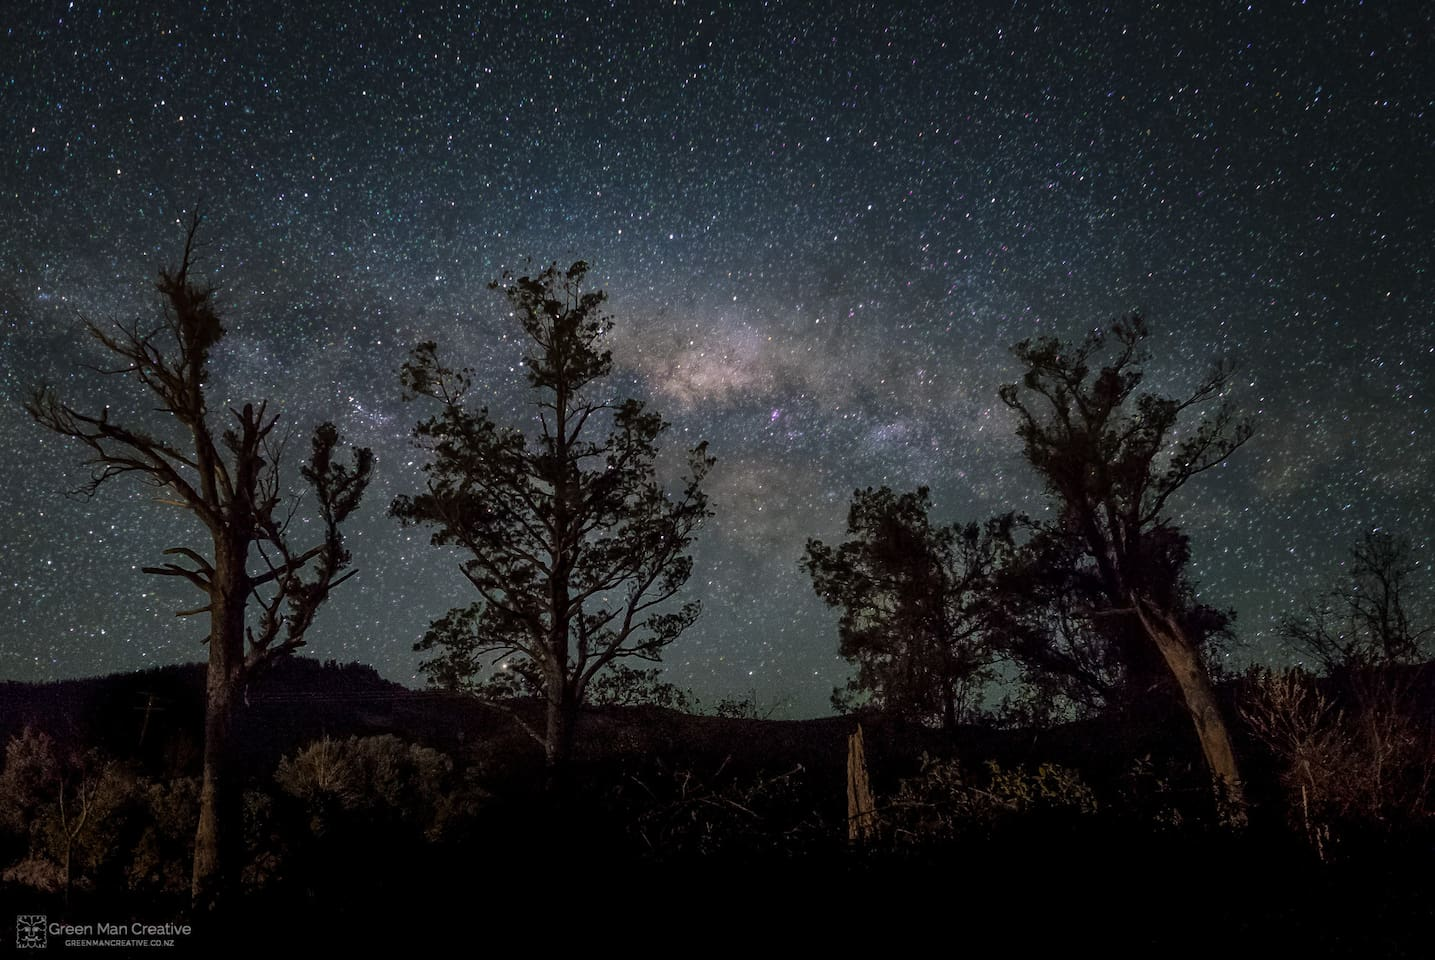 There is no light pollution here. Stunning views of the galaxy awaits you